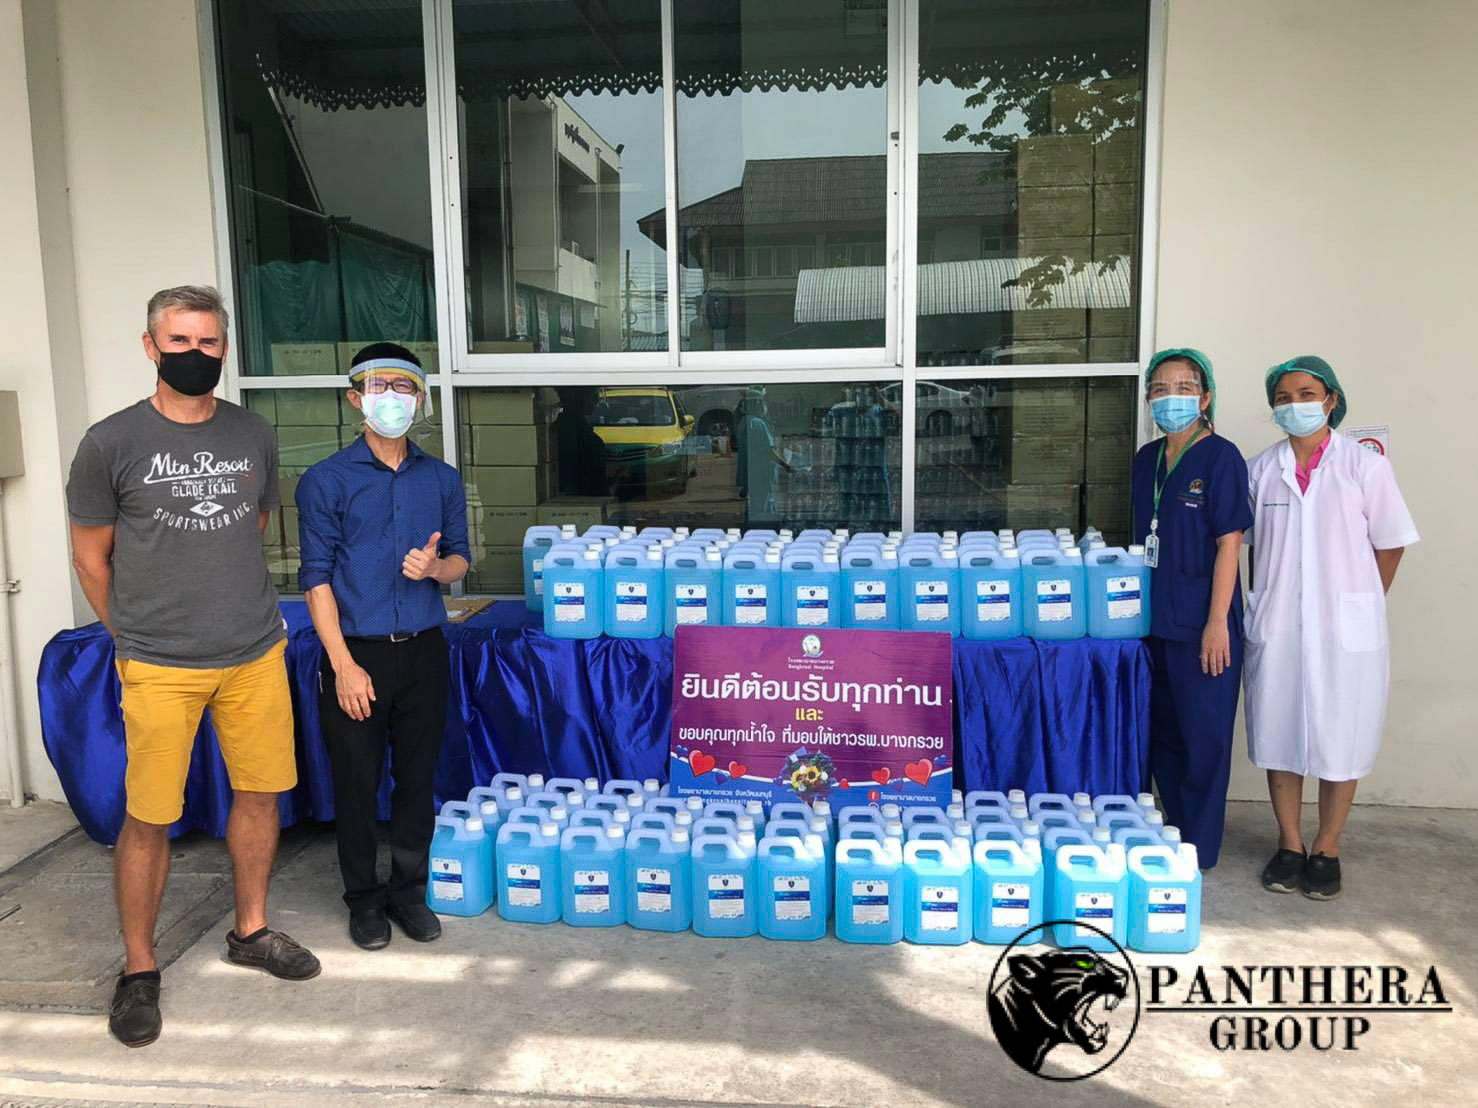 Panthera Group, Thailand's leading conglomerate of entertainment, law and marketing companies, is working to ensure Covid-19 patients checking into Bangkok hospitals get better, not worse.